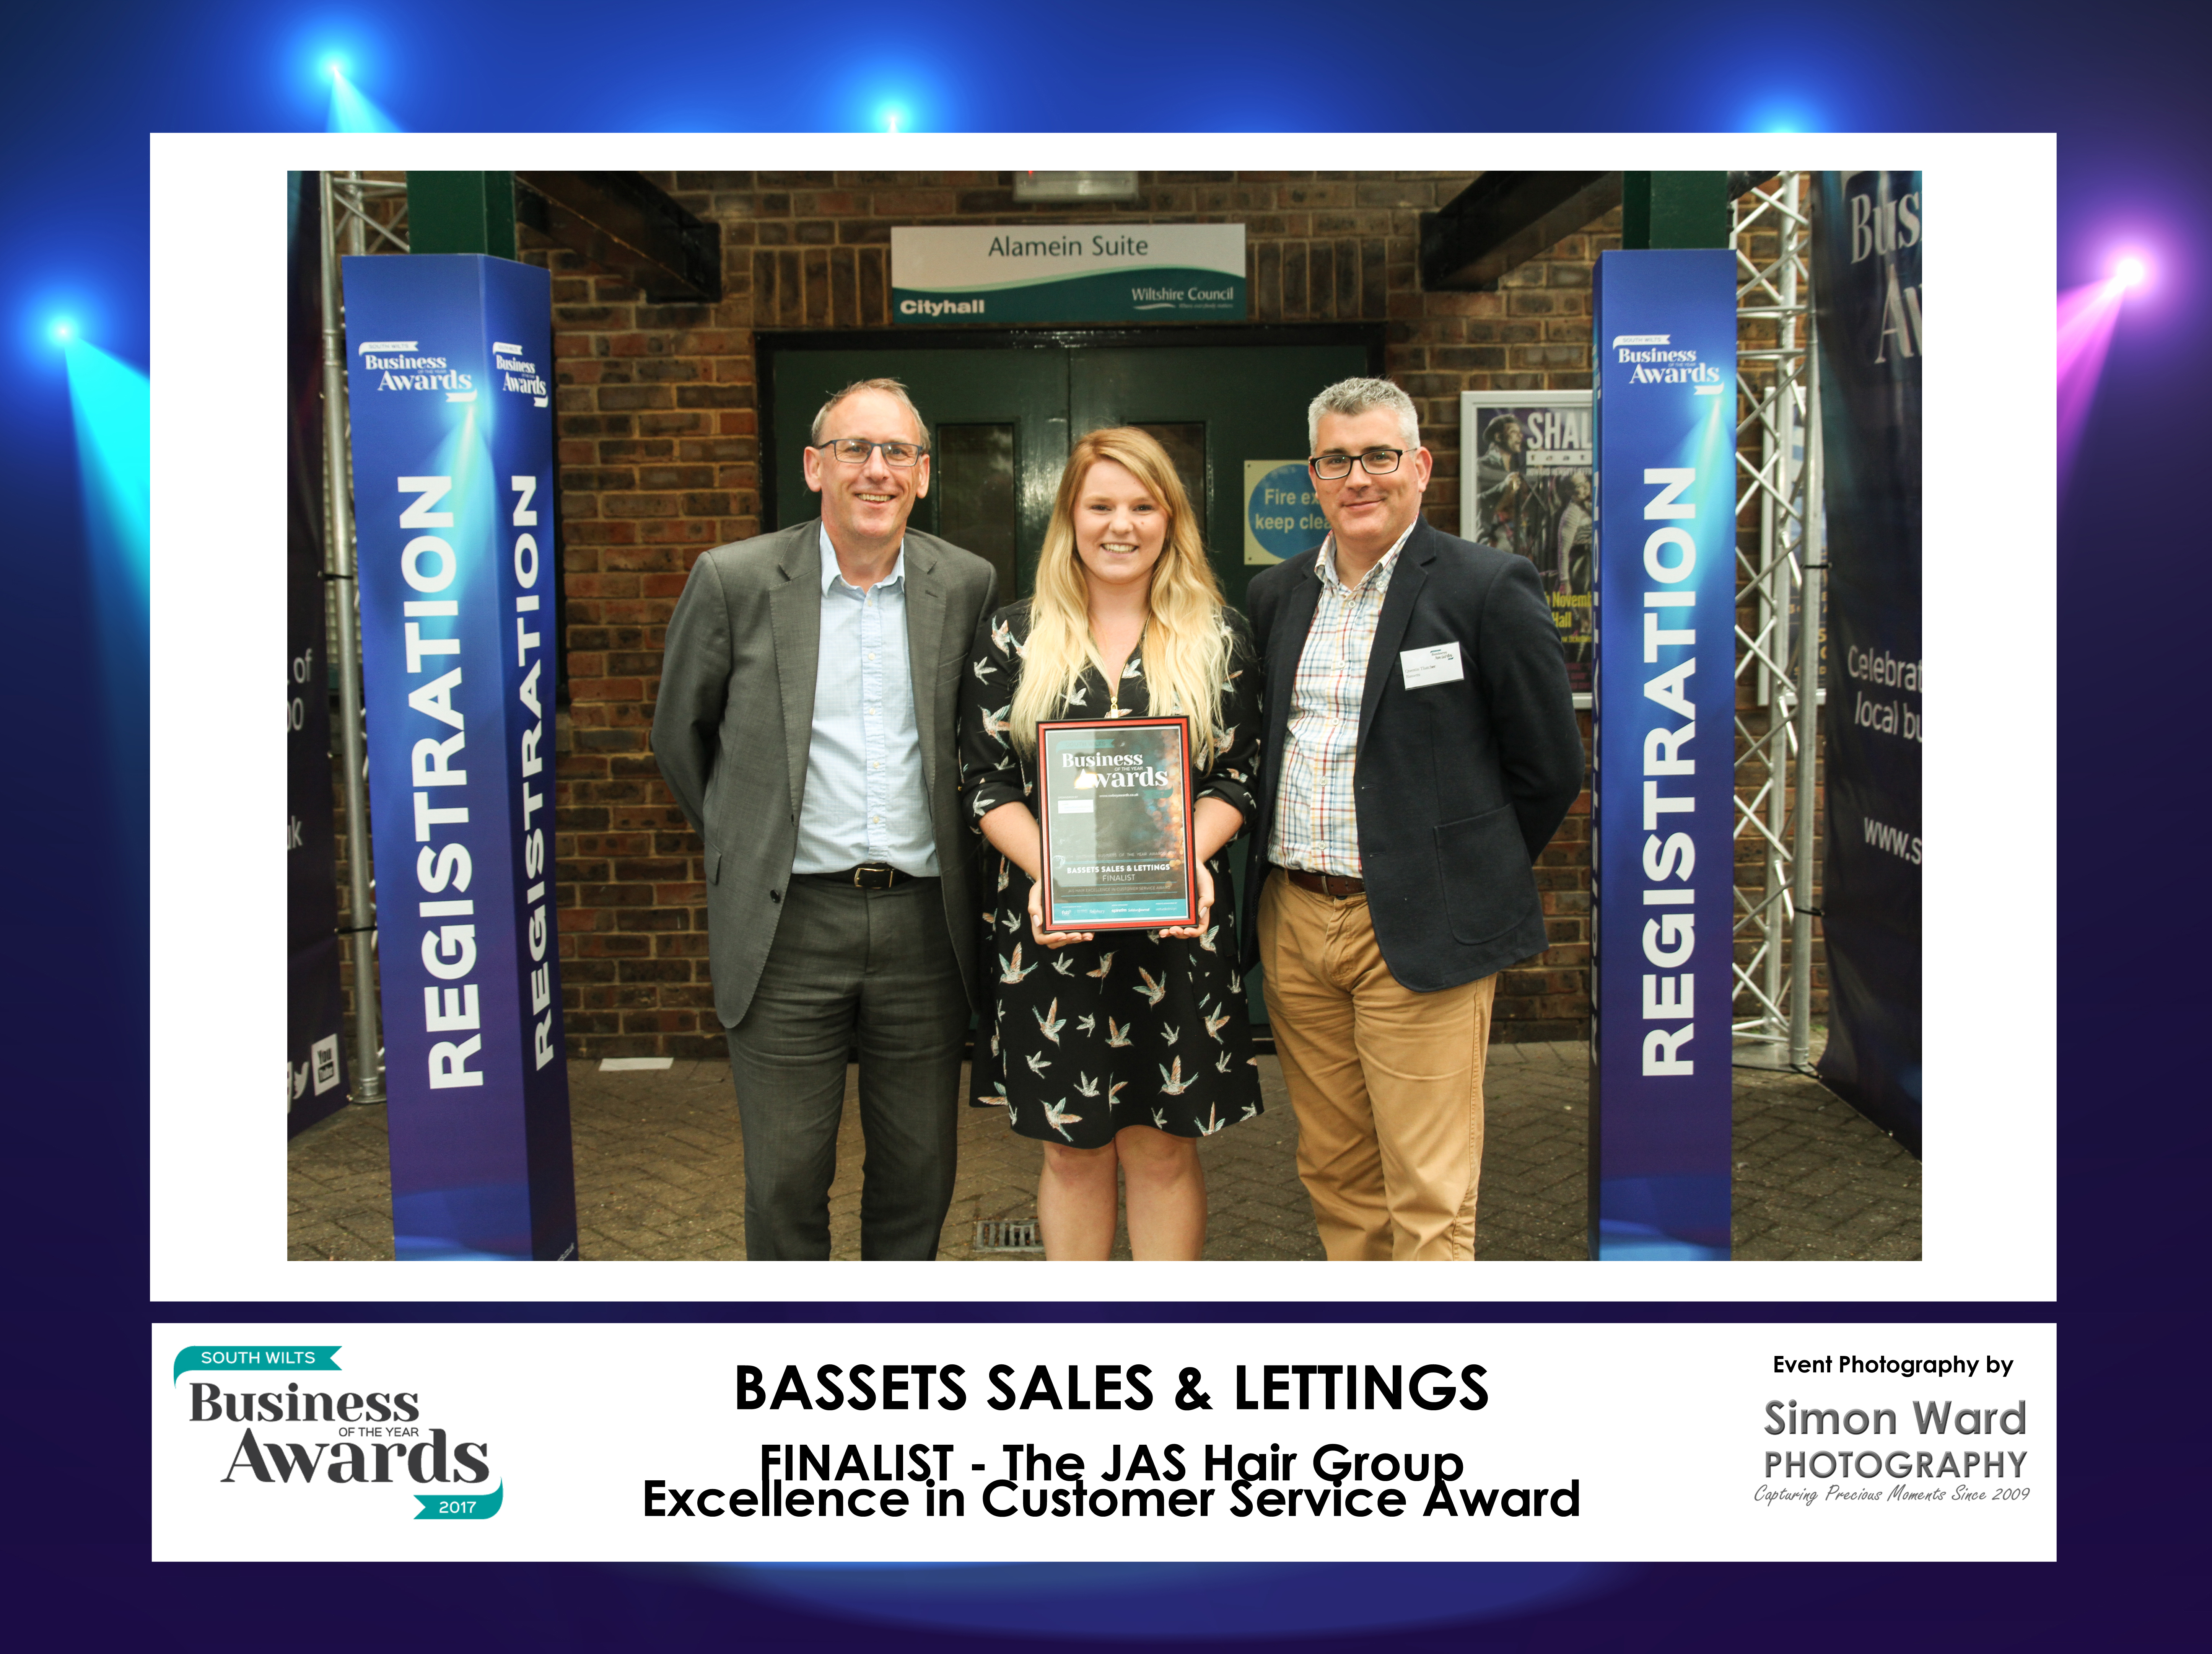 Bassets Sales & Lettings Customer Service Award